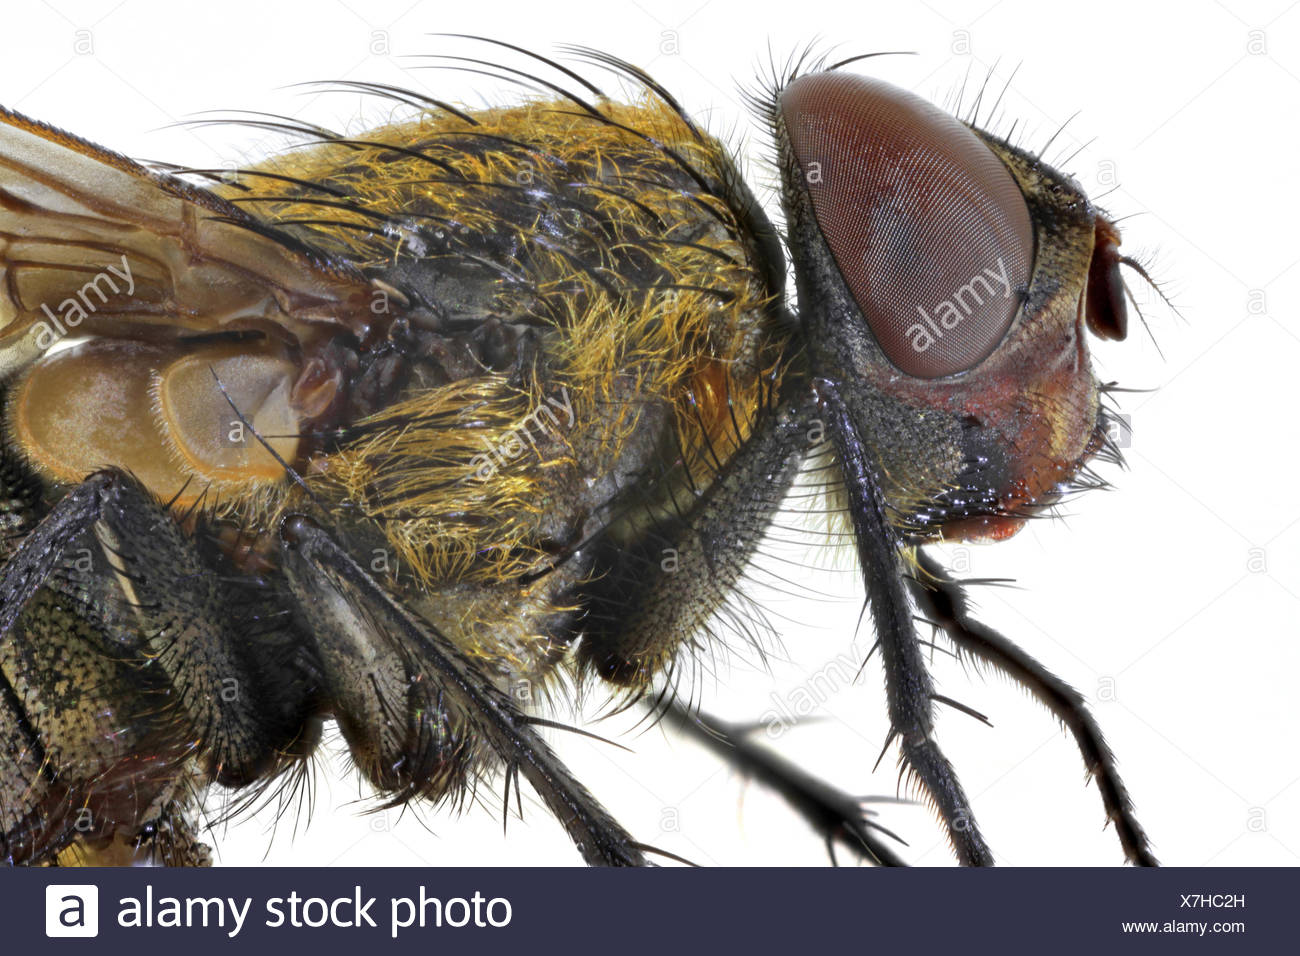 true flies (Brachycera, Diptera), head and thorax of a fly, lateral view Stock Photo